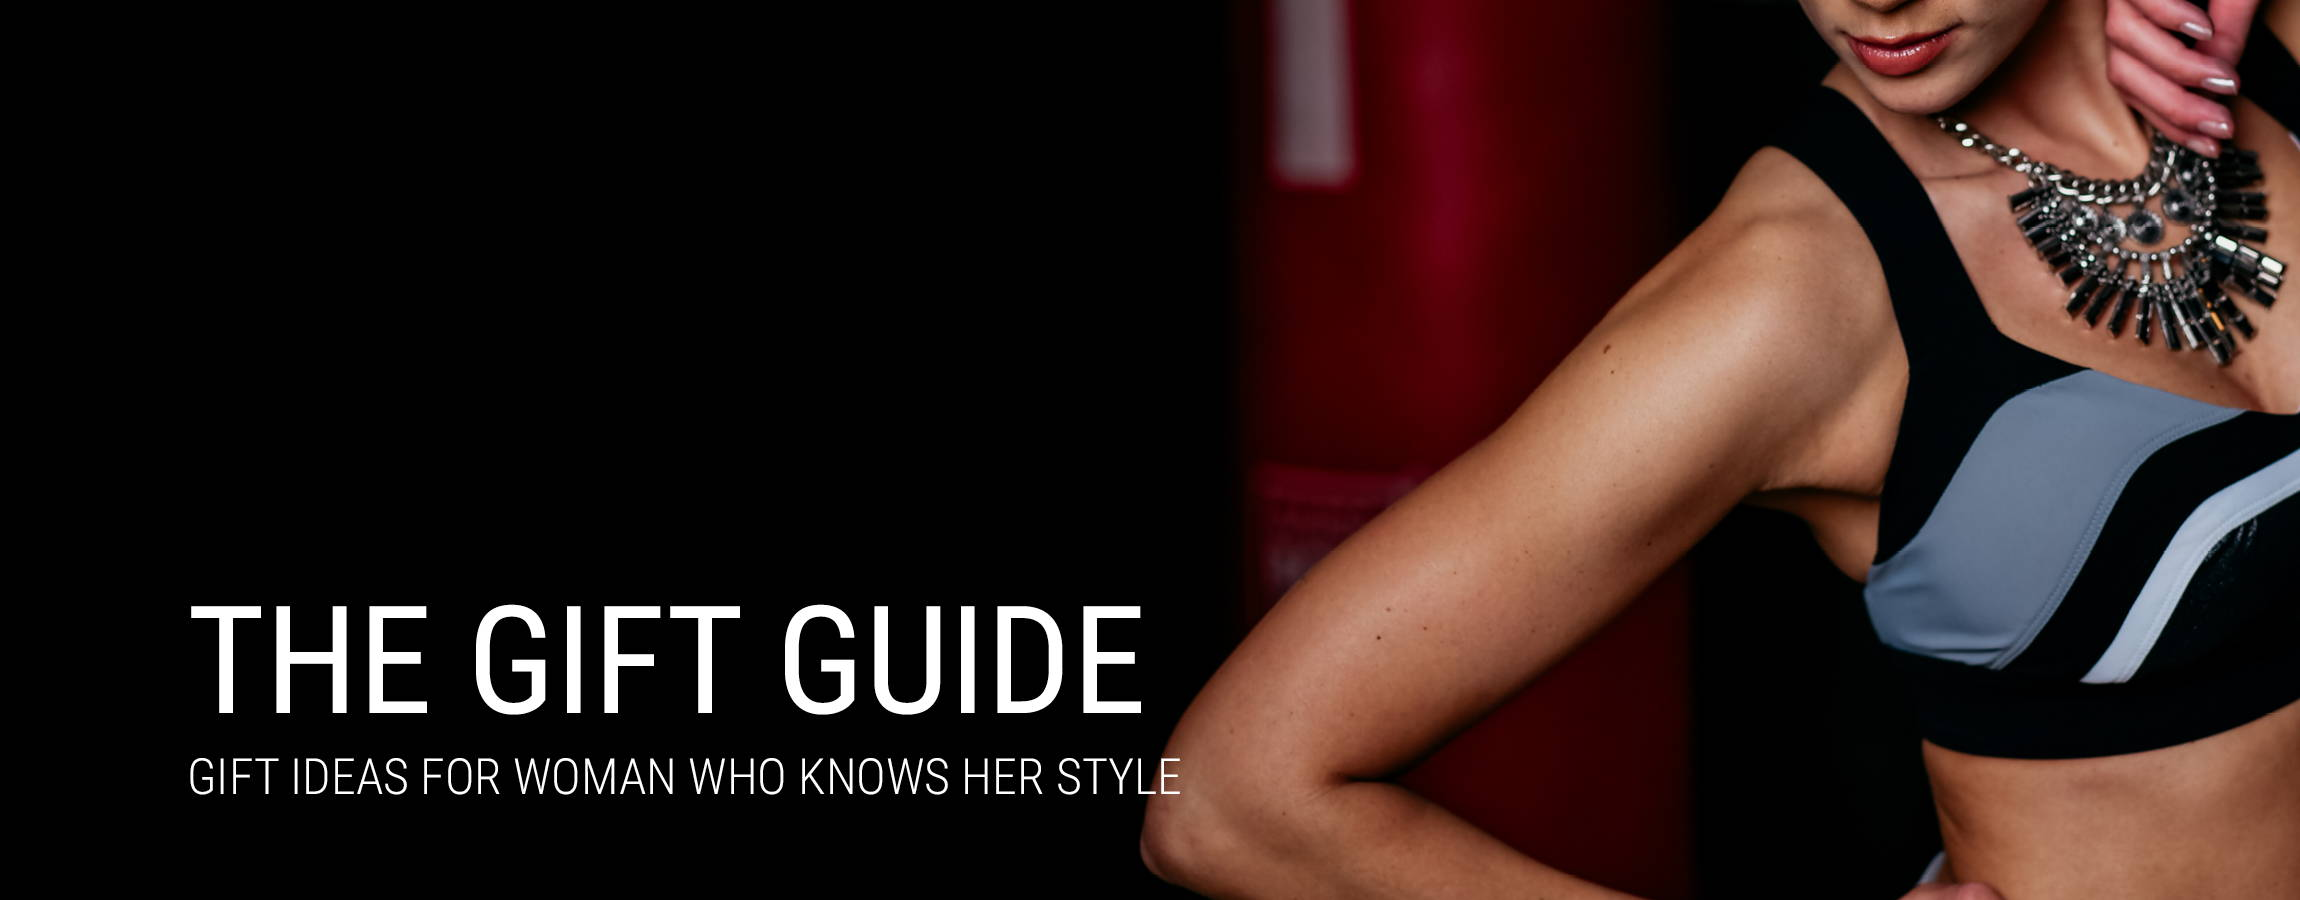 GIFT ACTIVEWEAR GUIDE FOR WOMAN XMAS GIFTS